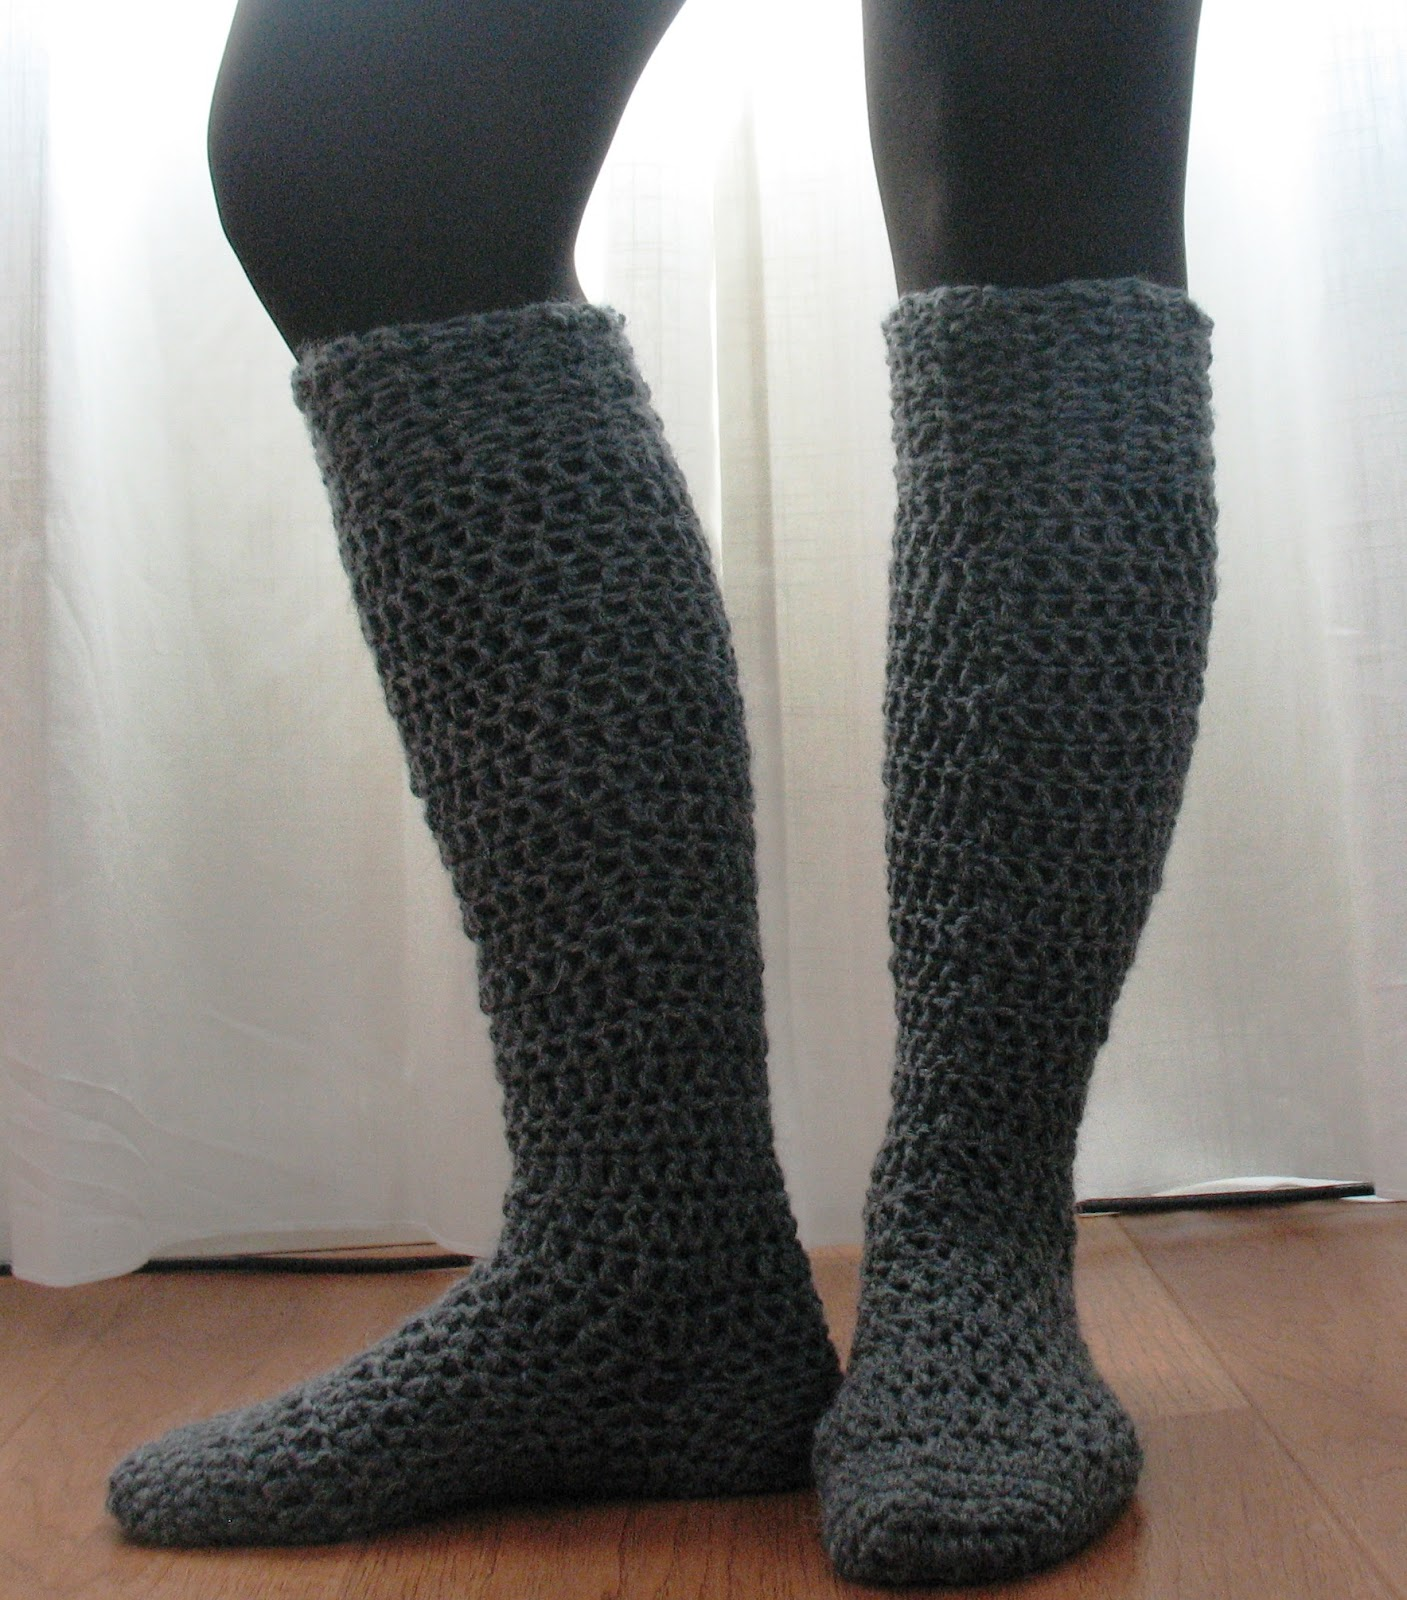 Top 10 free crochet and knit patterns for knee socks top 10 free crochet and knit patterns for knee socks that will keep you warm this bankloansurffo Image collections